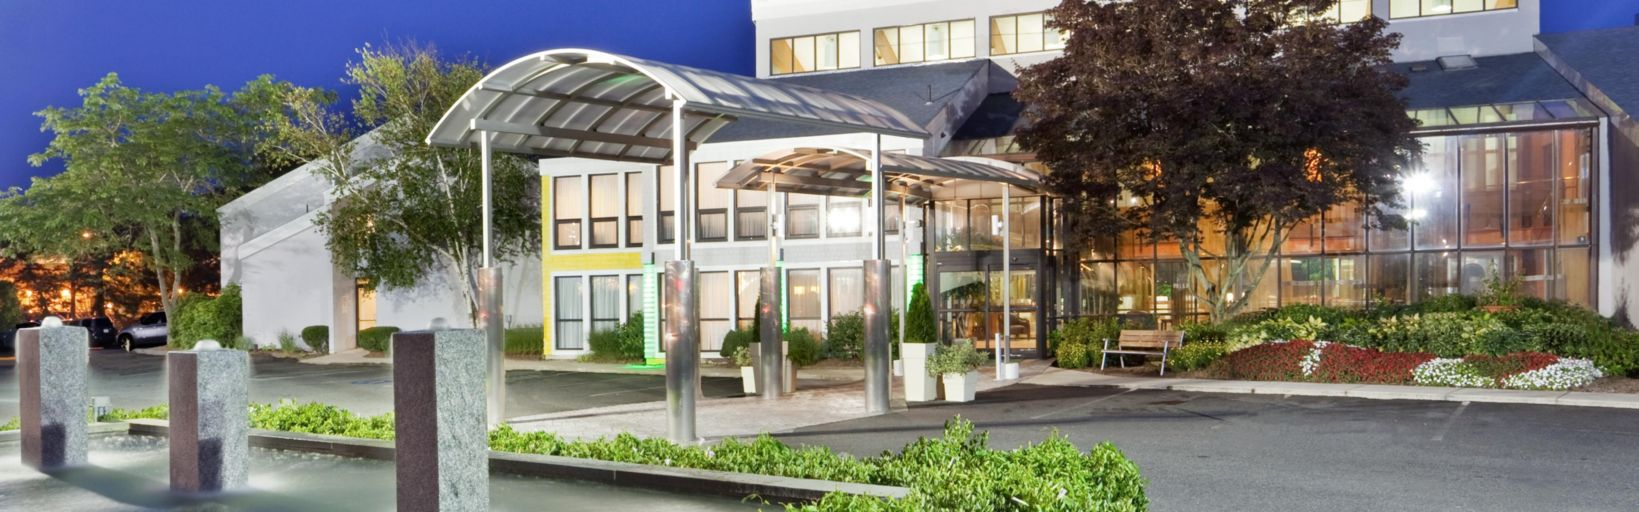 The Holiday Inn Cape Cod Hyannis Welcomes You Hotel Exterior